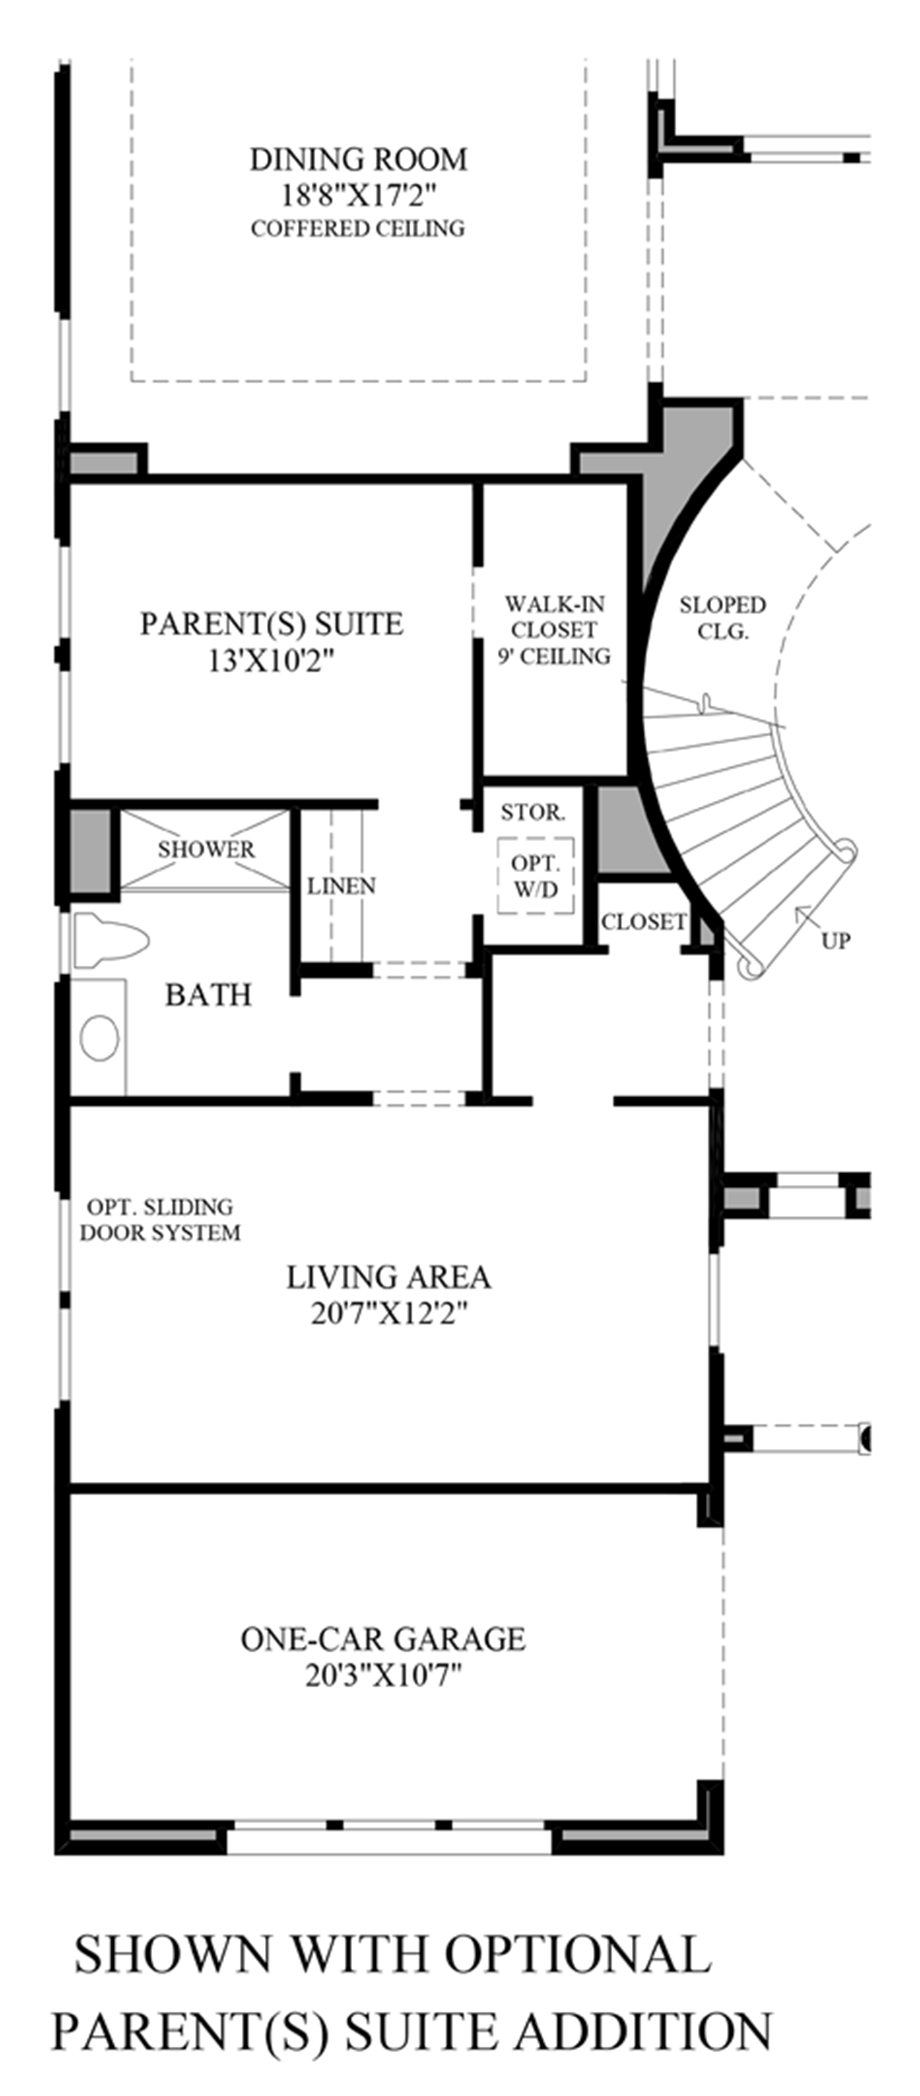 Optional Parents Suite Addition Floor Plan